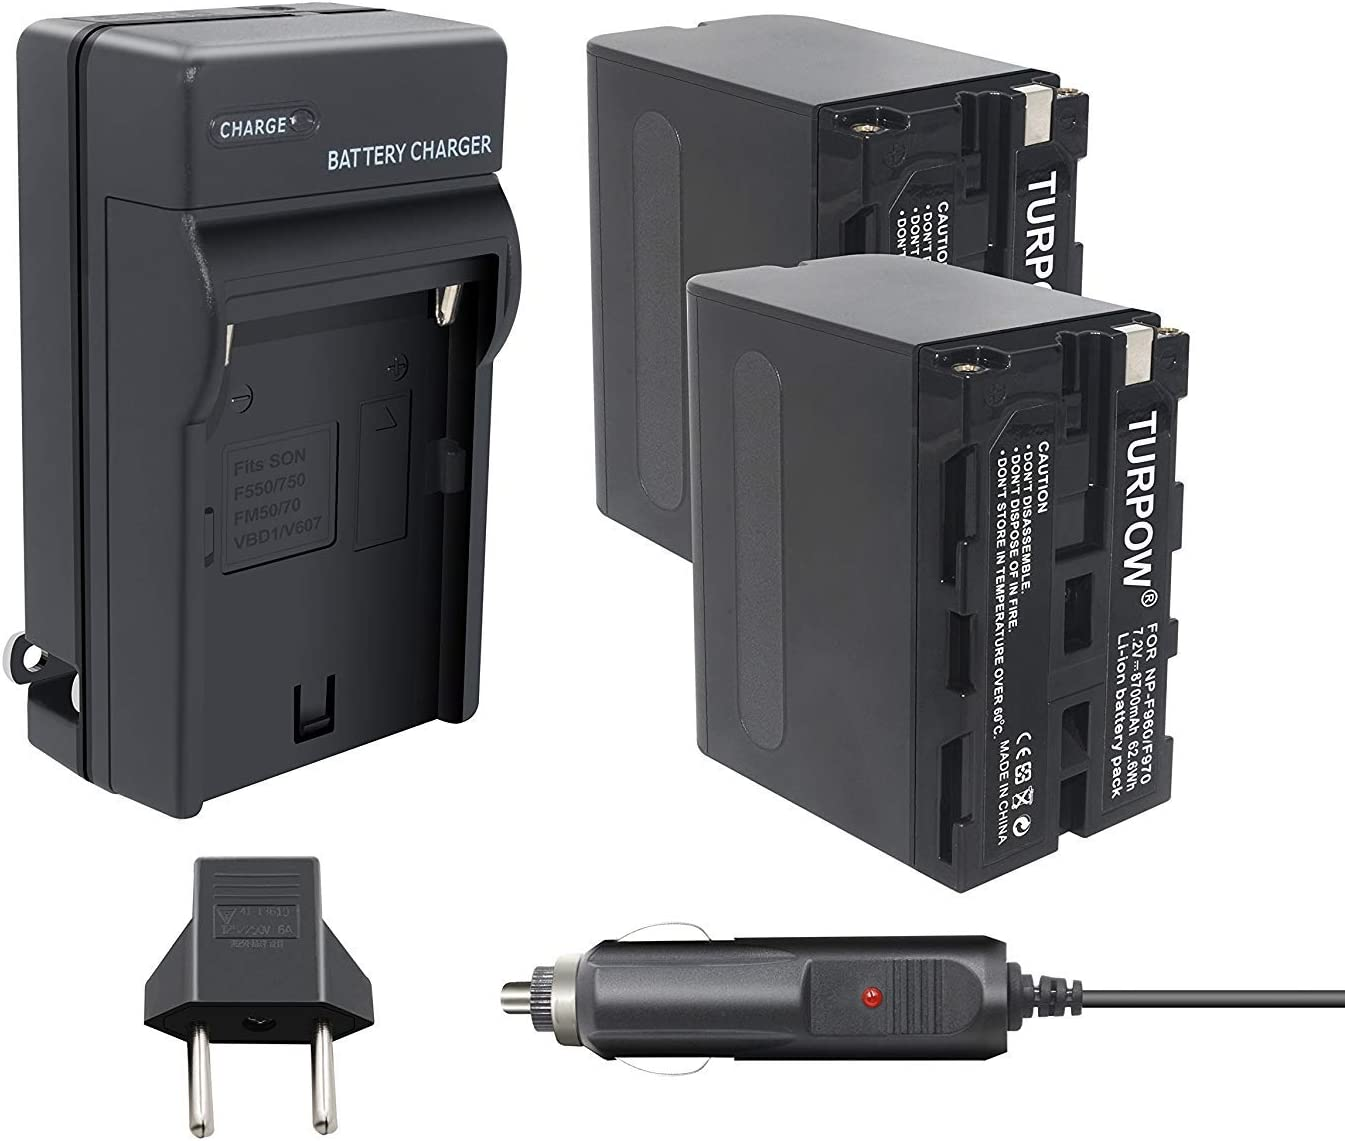 Tectra Dual USB Charger for Sony NP-F960 NP-F970 NP-F975 NP-F570 NP F750 NP-F770 and and DCR-VX2100 HDR-AX2000 FX1 FX7 FX1000 HVR-HD1000U V1U Z1P Z1U Z5U HXR-MC2000U FS100U FS700U and LED Video Light